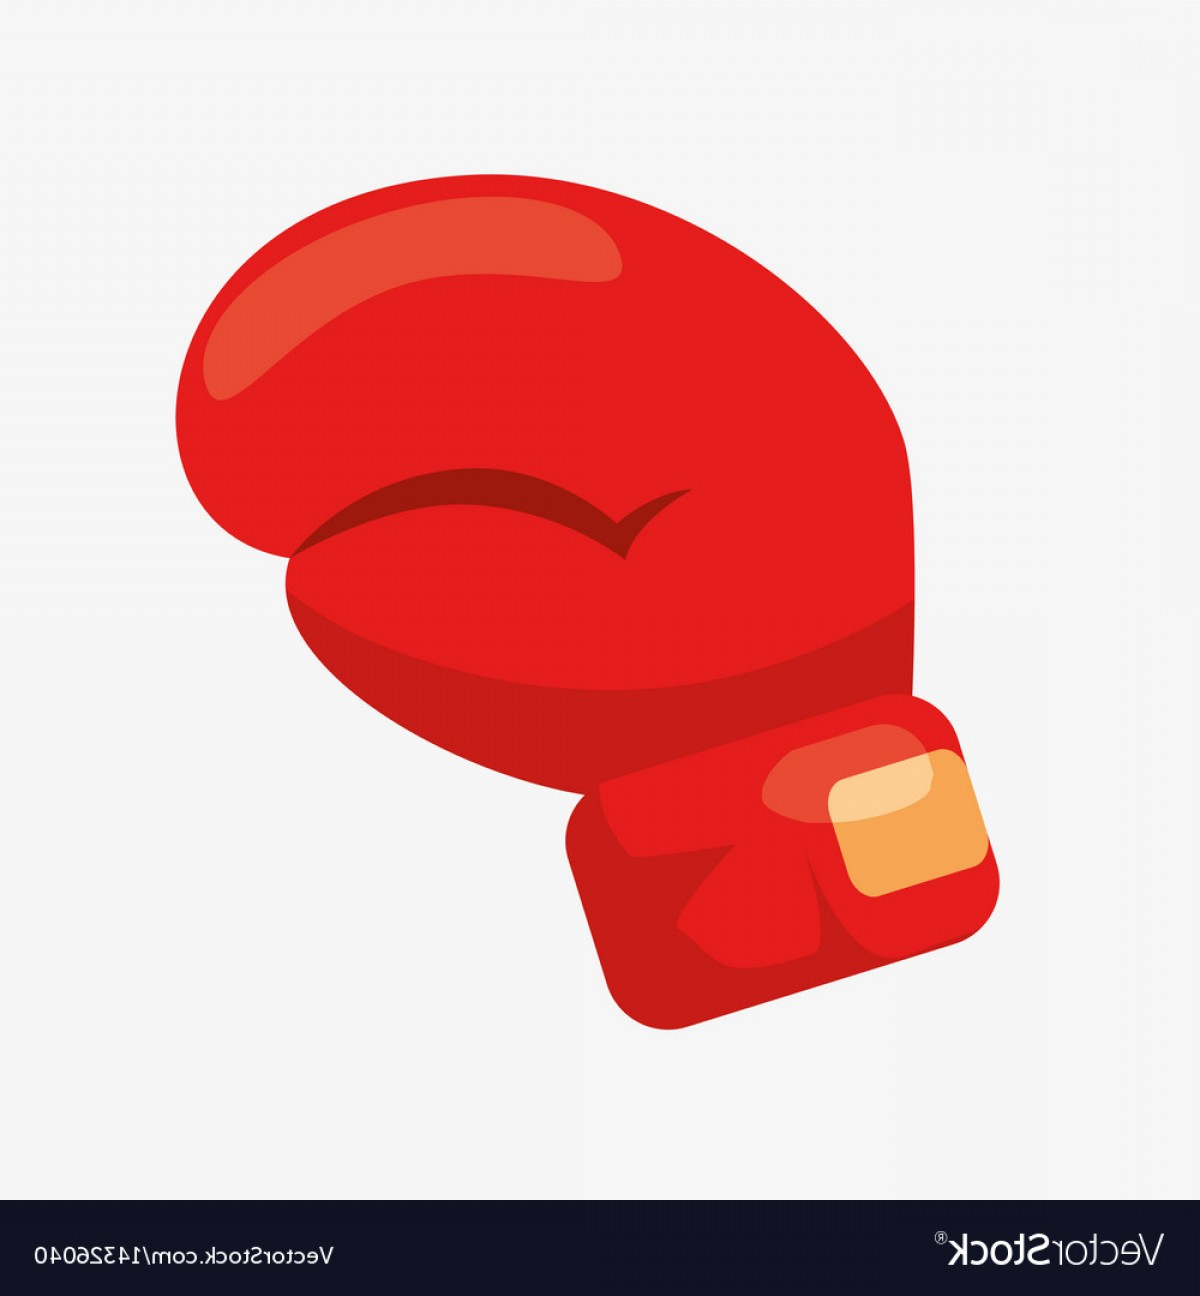 Pictures Of Boxing Gloves Vector Art: Boxing Glove Cartoon Icon Vector